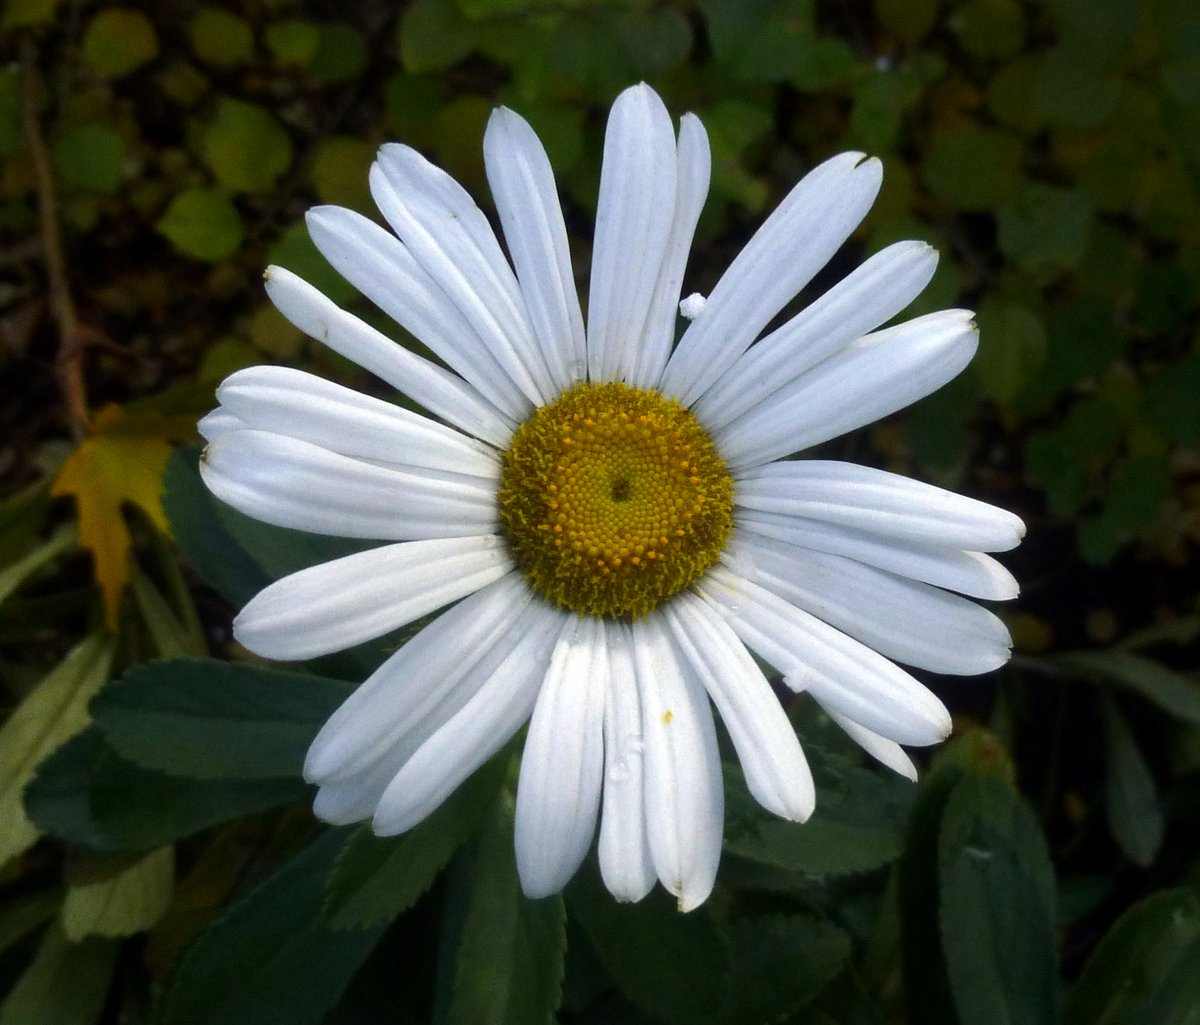 Montauk daisy new hampshire garden solutions i saw this daisy like flower blooming in a local park when snow was falling it looked like a shasta daisy on steroids growing two feet tall with tough izmirmasajfo